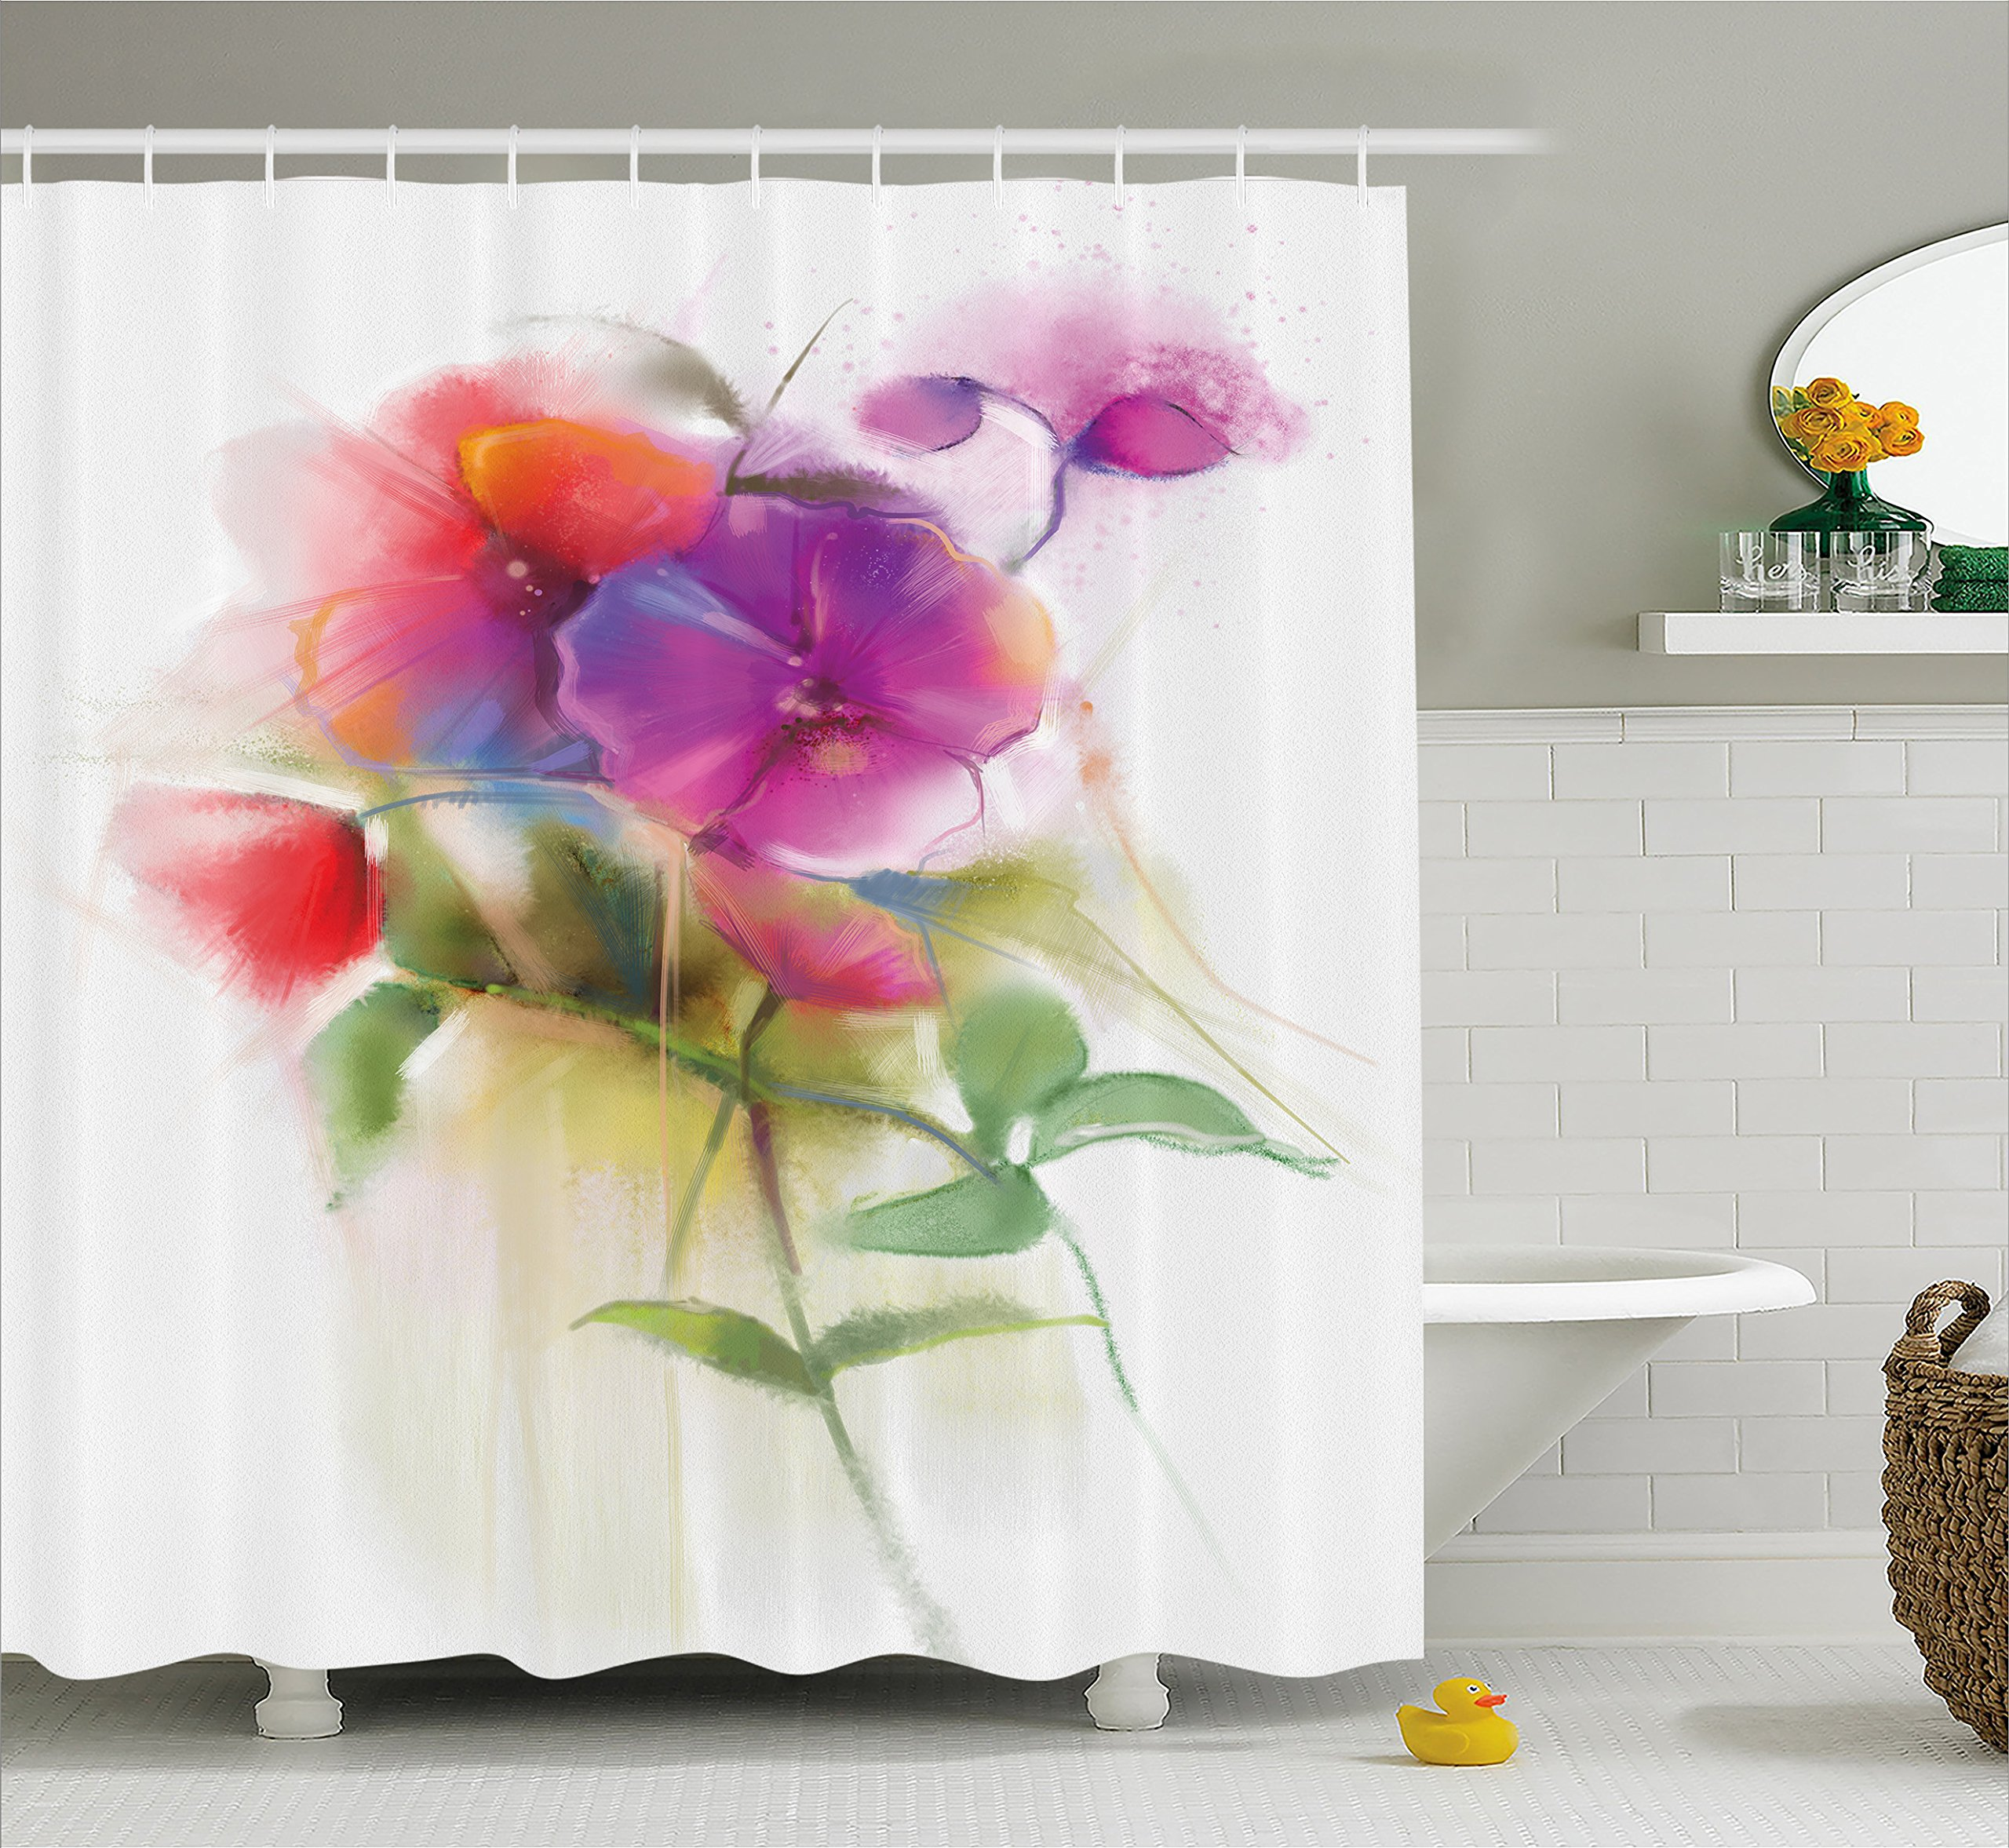 Ambesonne Watercolor Flower Home Decor Shower Curtain, Blooming Orchid Spring Bouquet Romance Natural Beauty Fragrance, Fabric Bathroom Decor Set with Hooks, 75 Inches Long, Purple